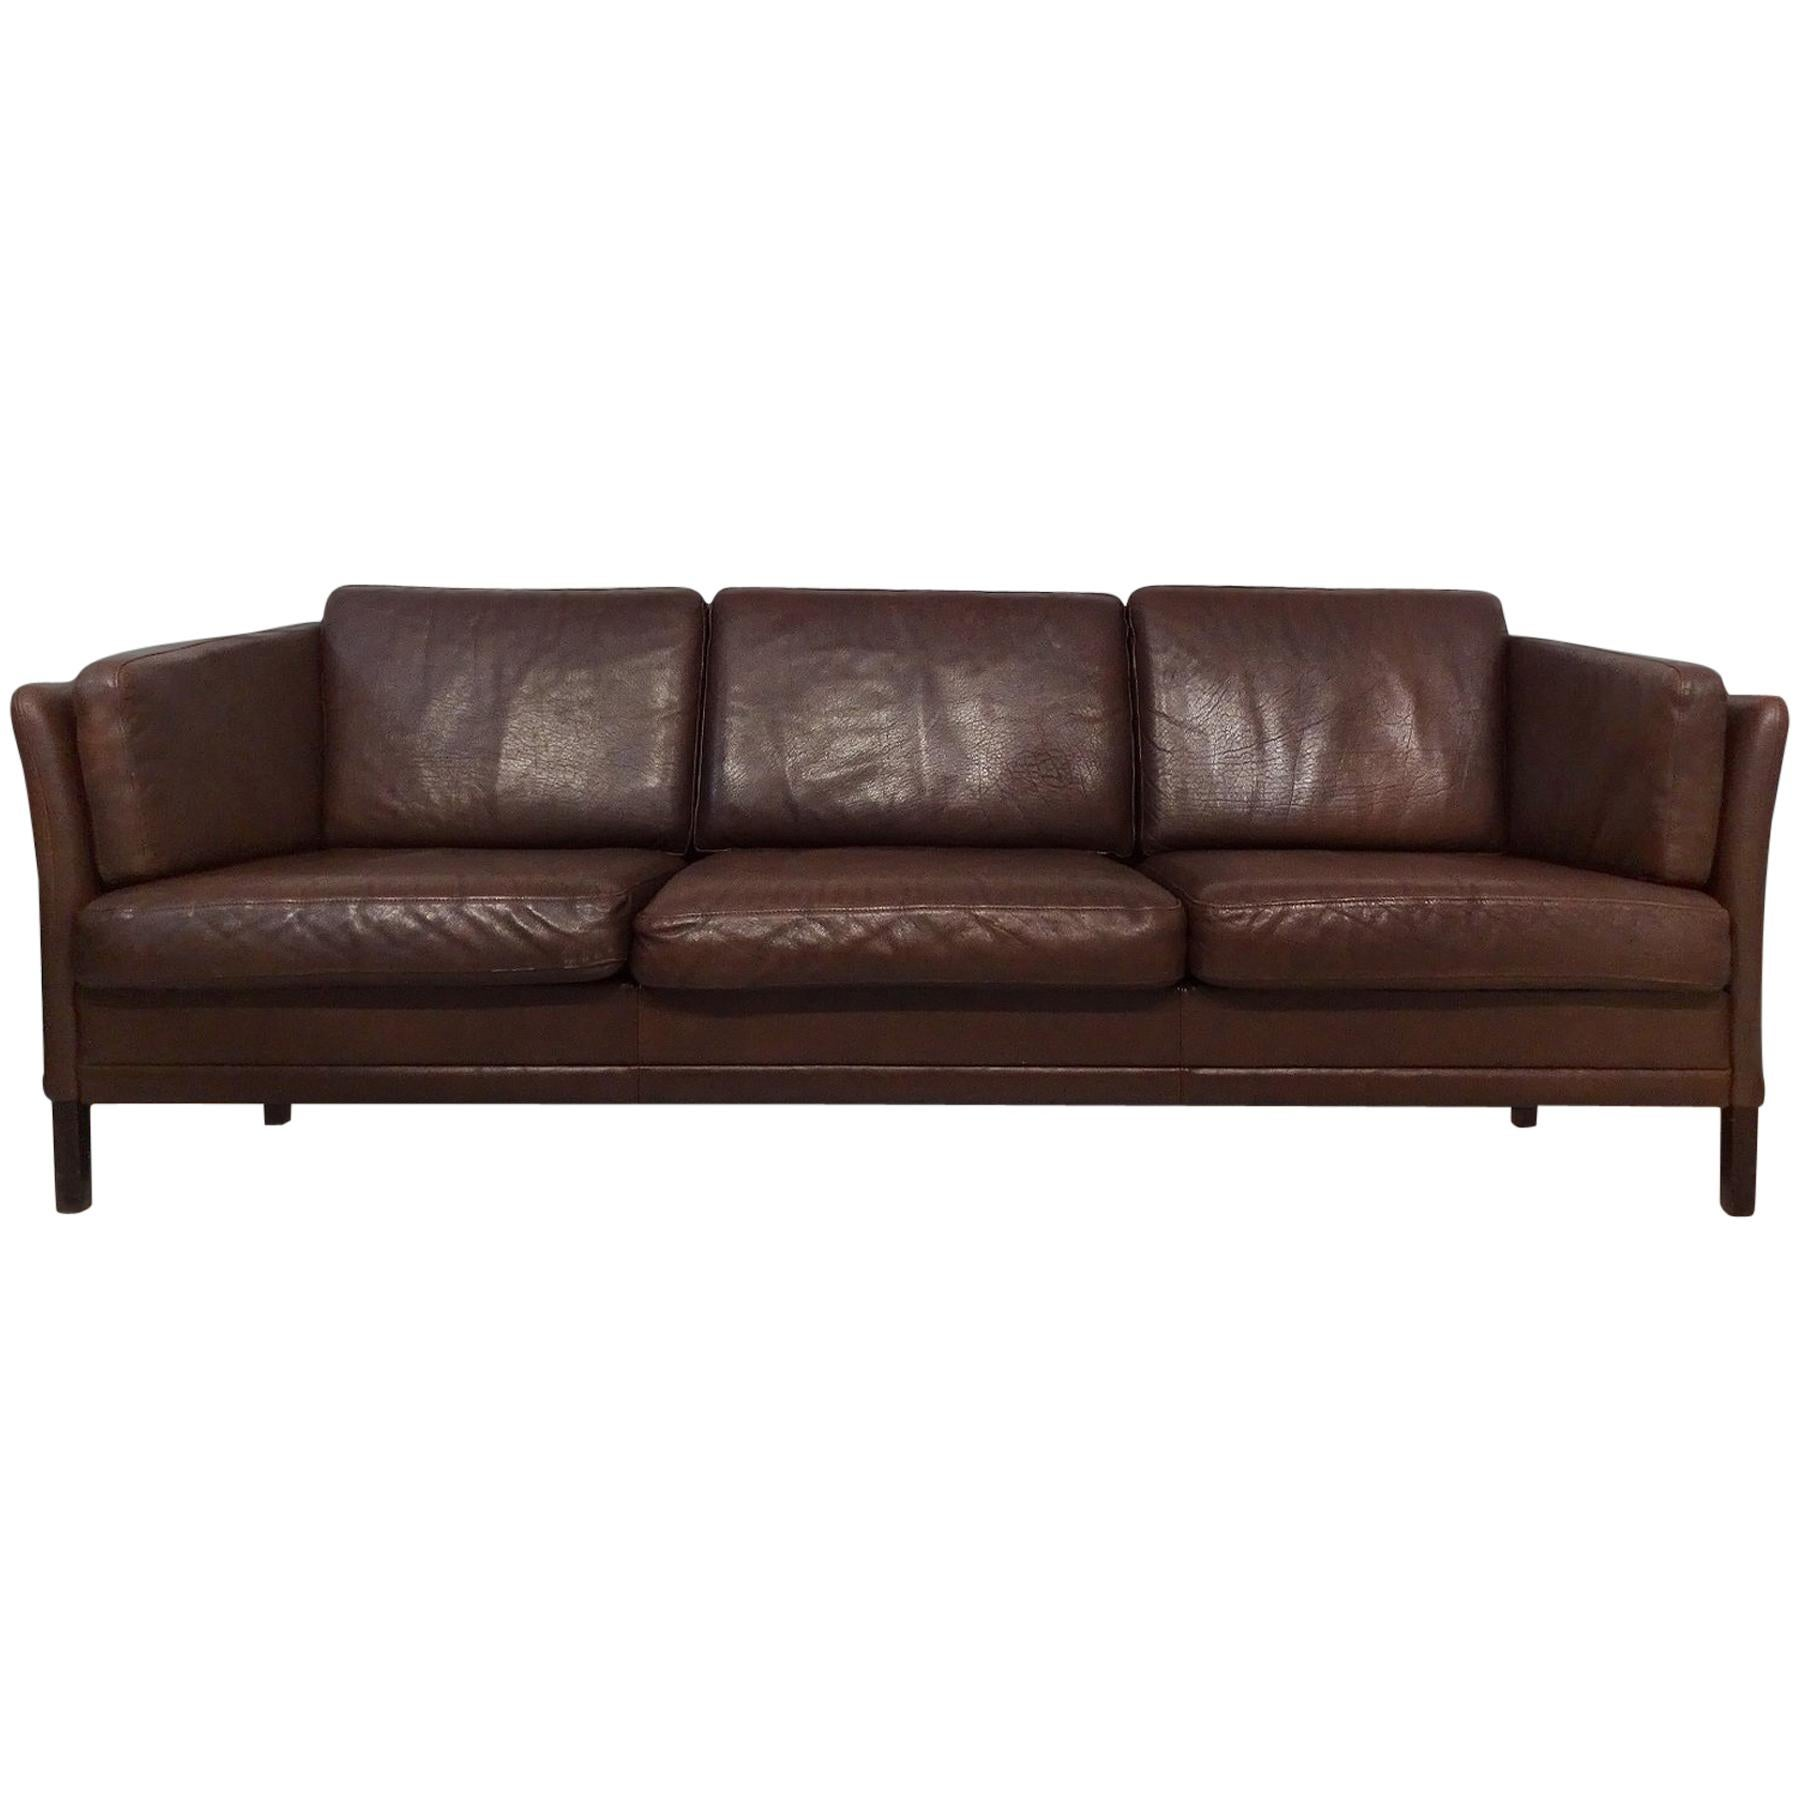 Danish Midcentury Brown Leather Sofa By Mogens Hansen At 1stdibs